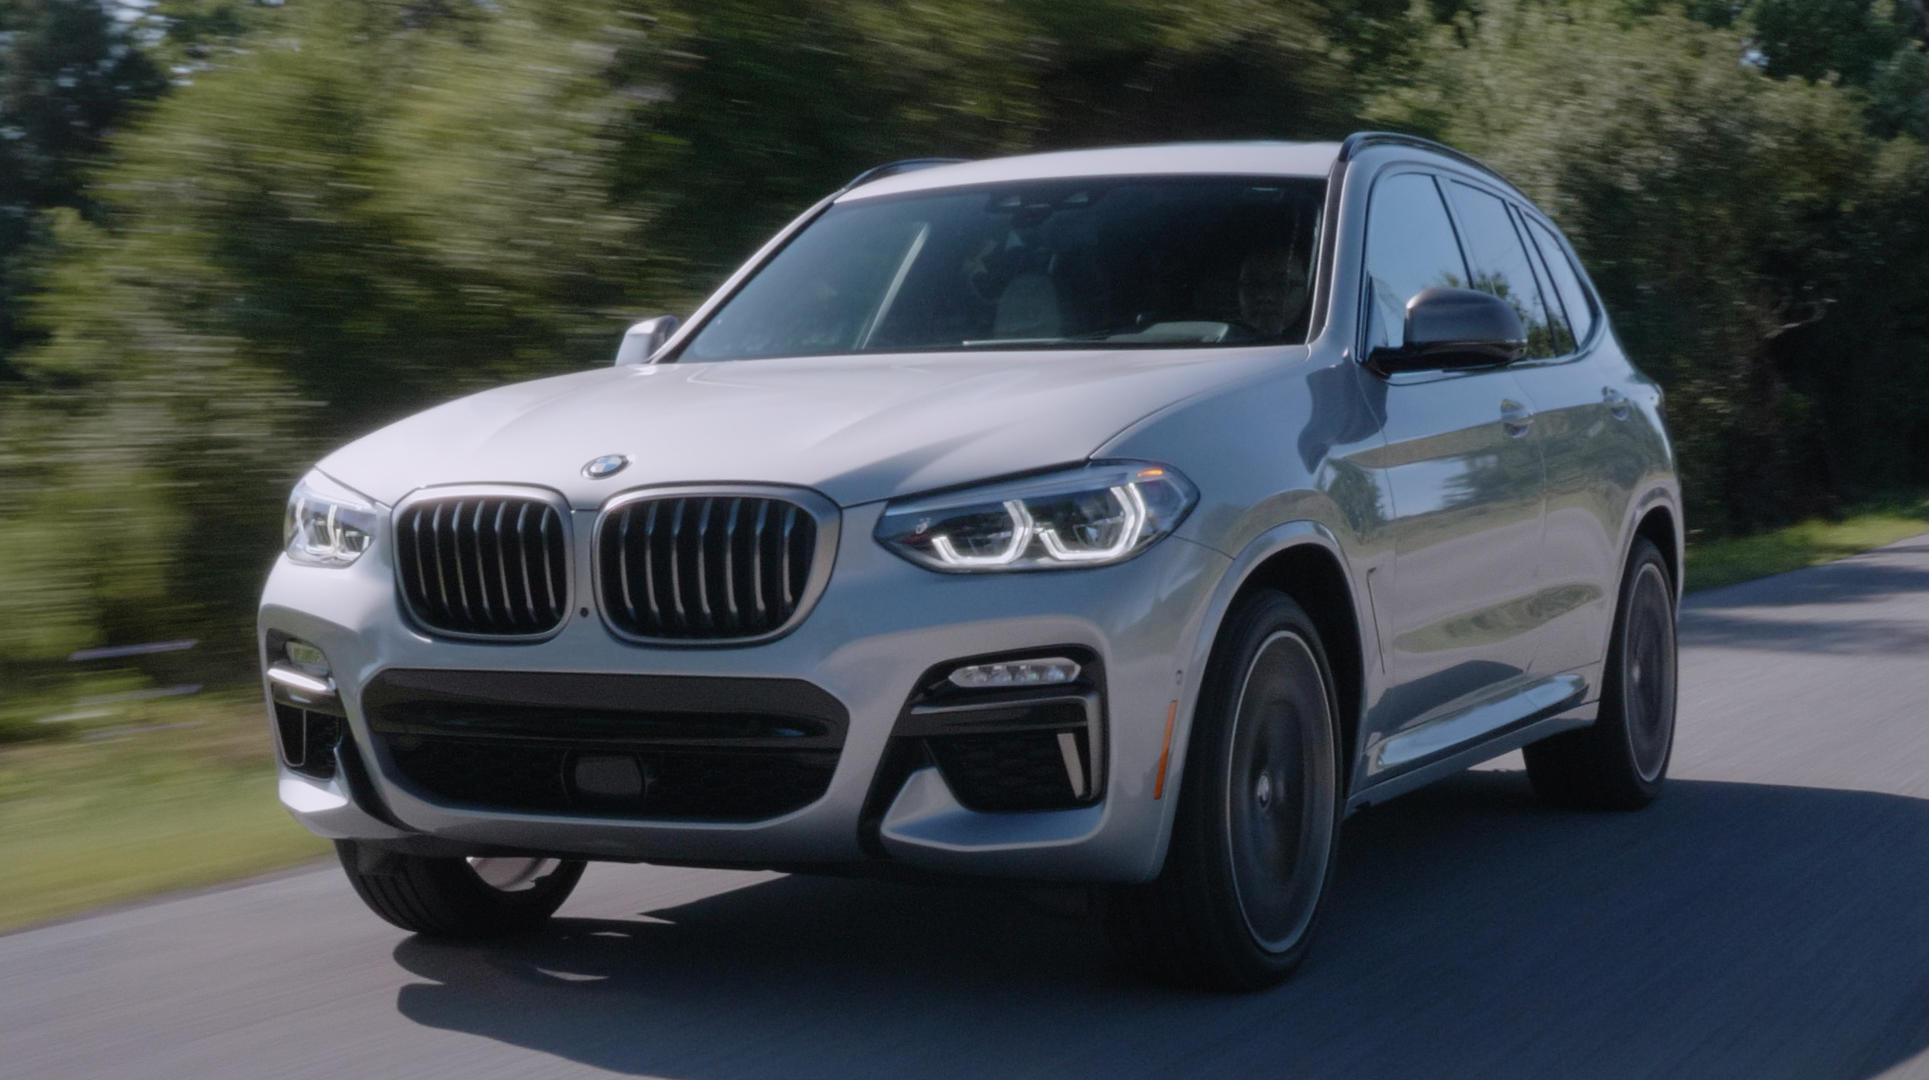 Video: 5 things you need to know about the 2019 BMW X3 M40i